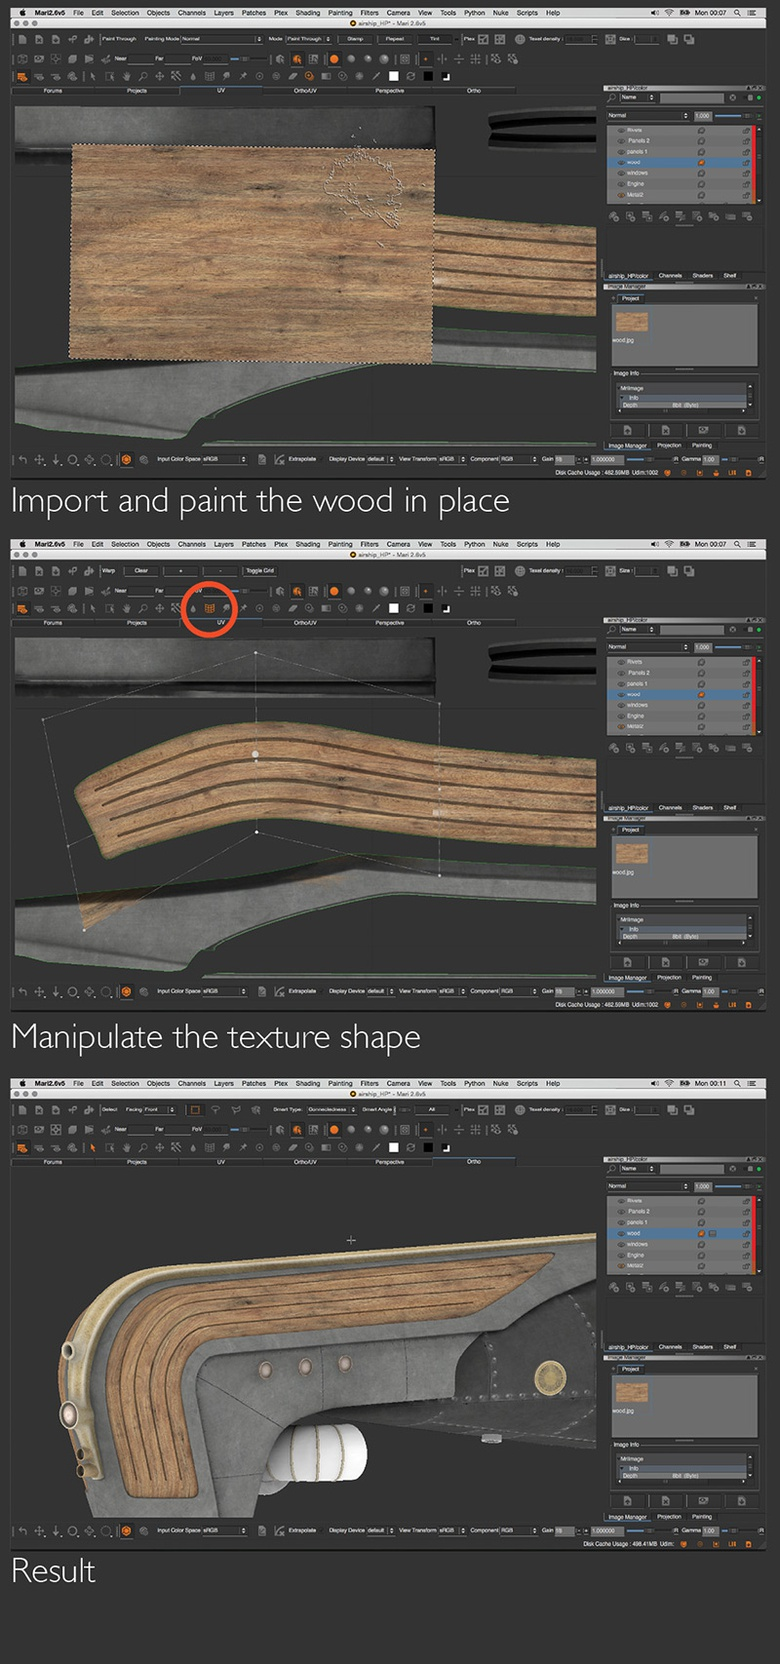 Adding a wood paneling effect to the nose of the ship